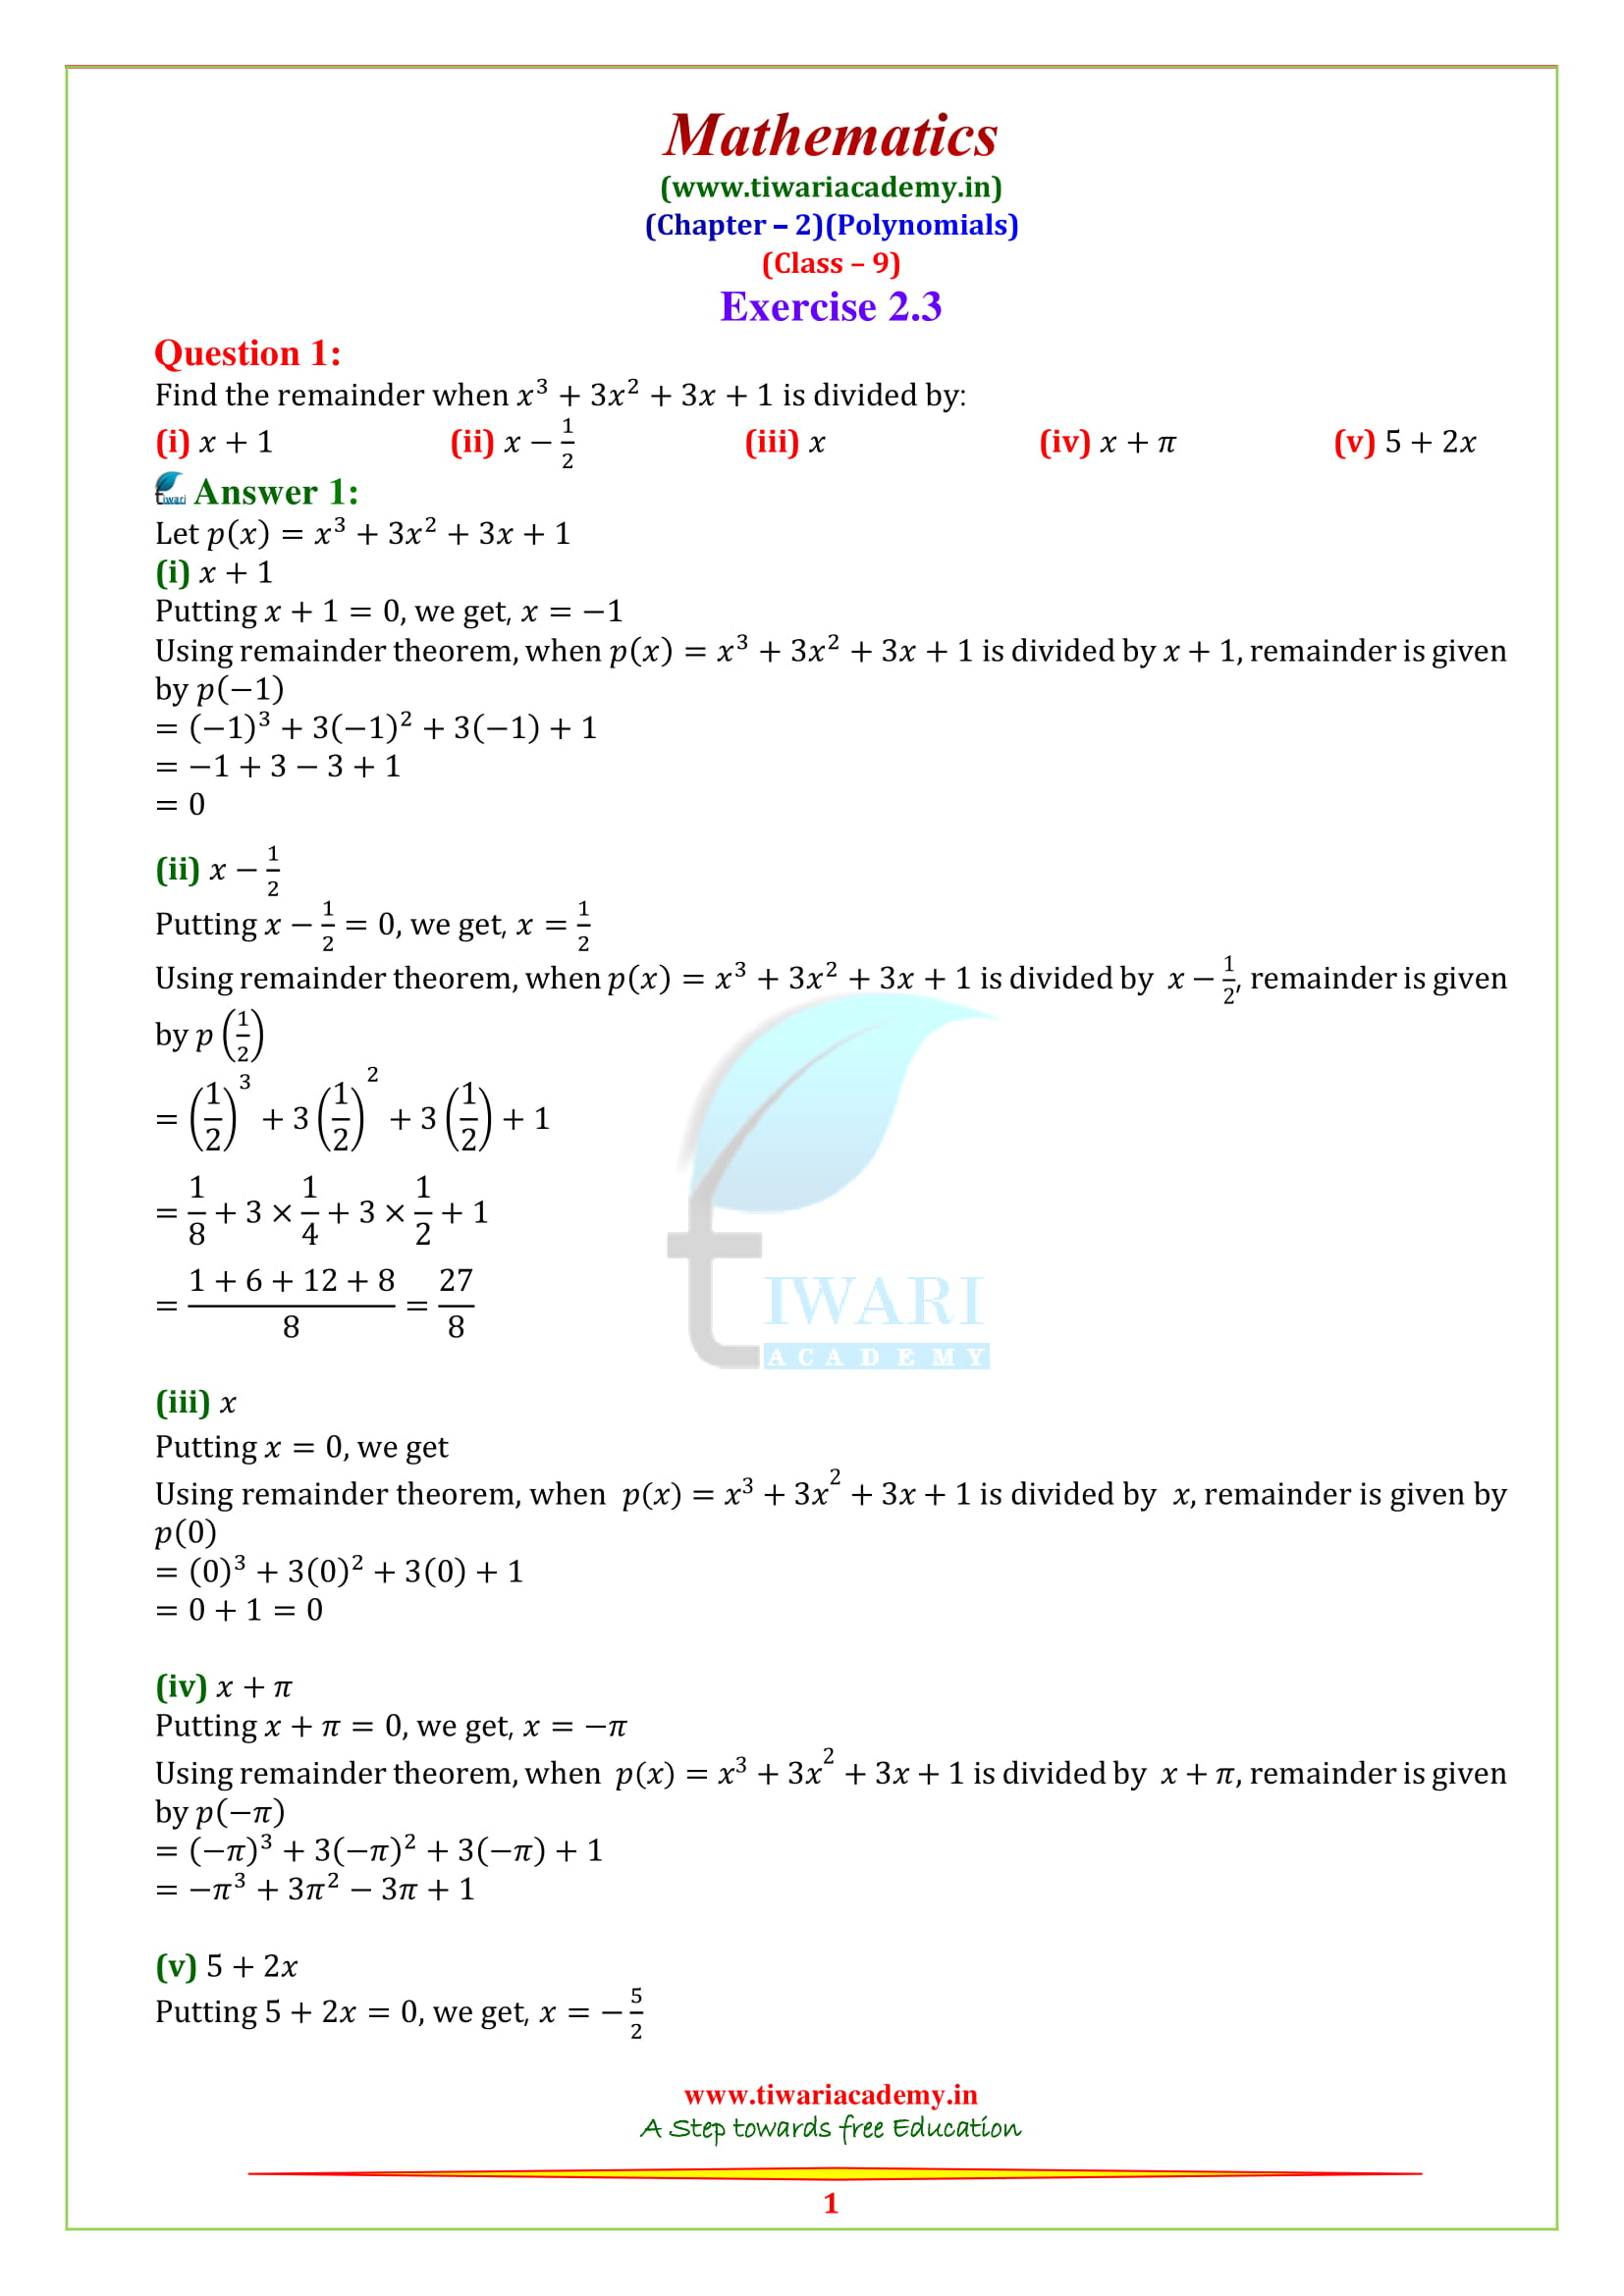 NCERT Solutions for class 9 Maths Chapter 2 Exercise 2.3